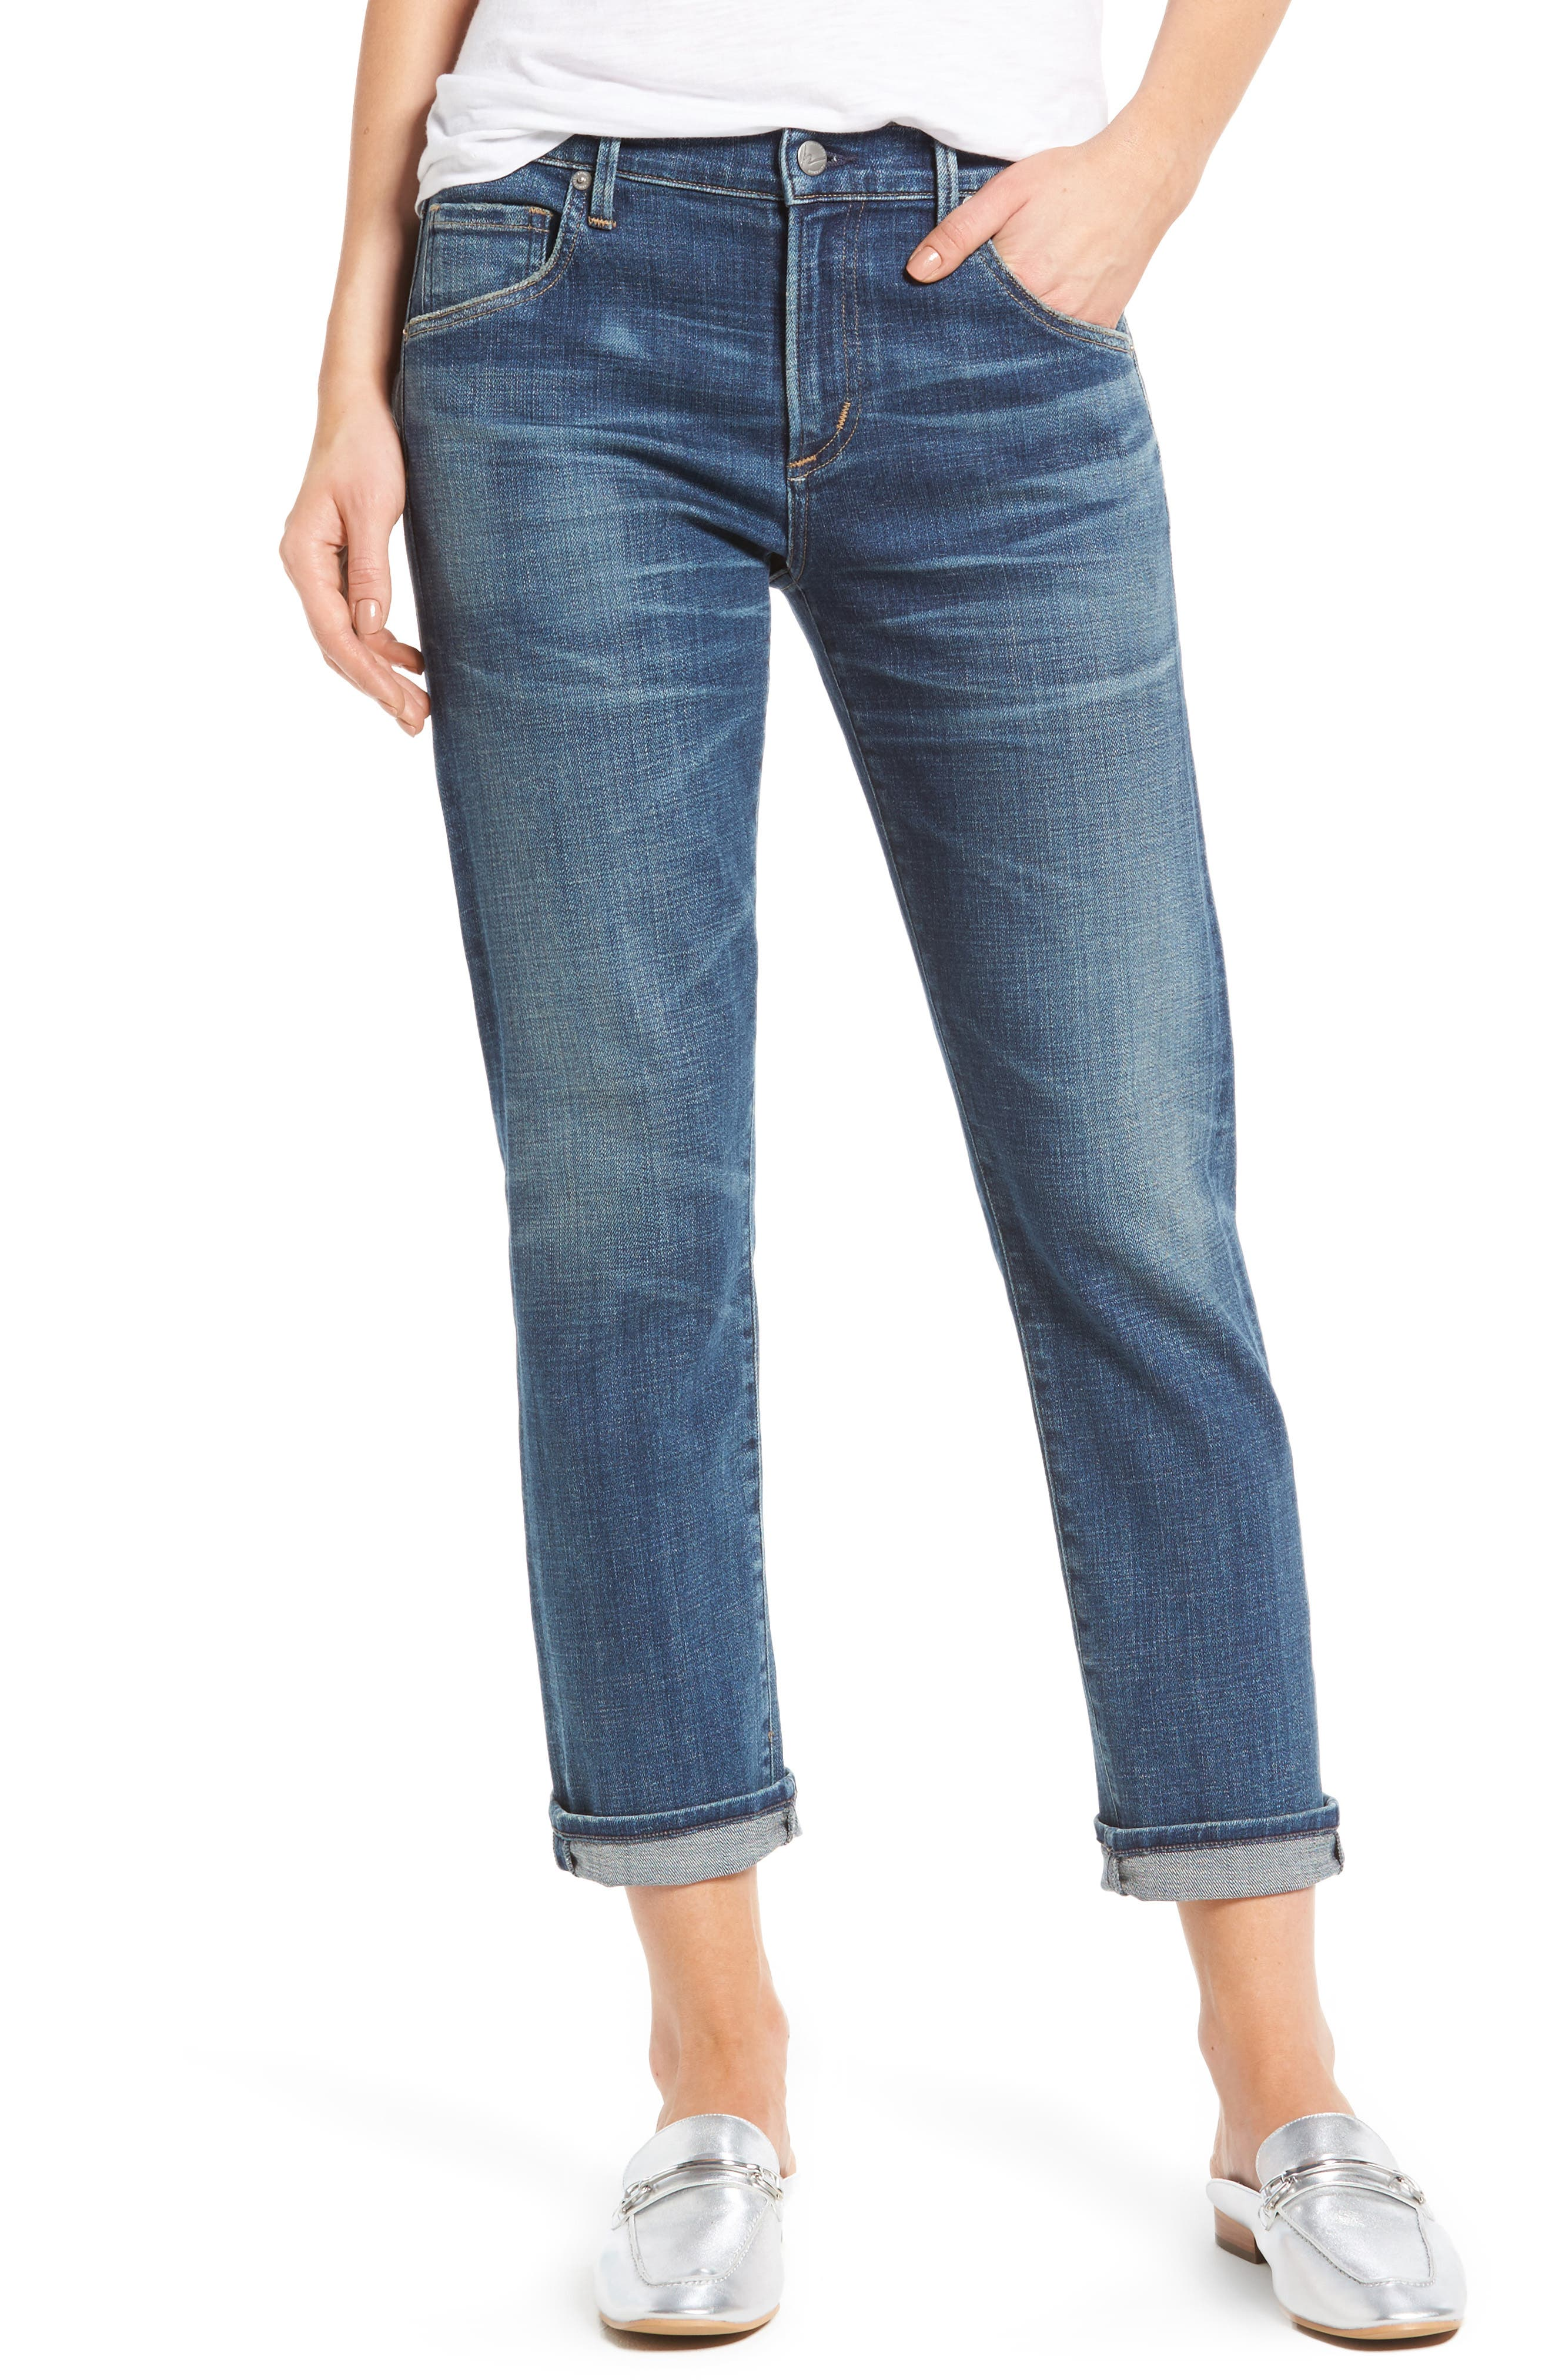 Alternate Image 1 Selected - Citizens of Humanity Emerson Slim Boyfriend Jeans (Crusade)